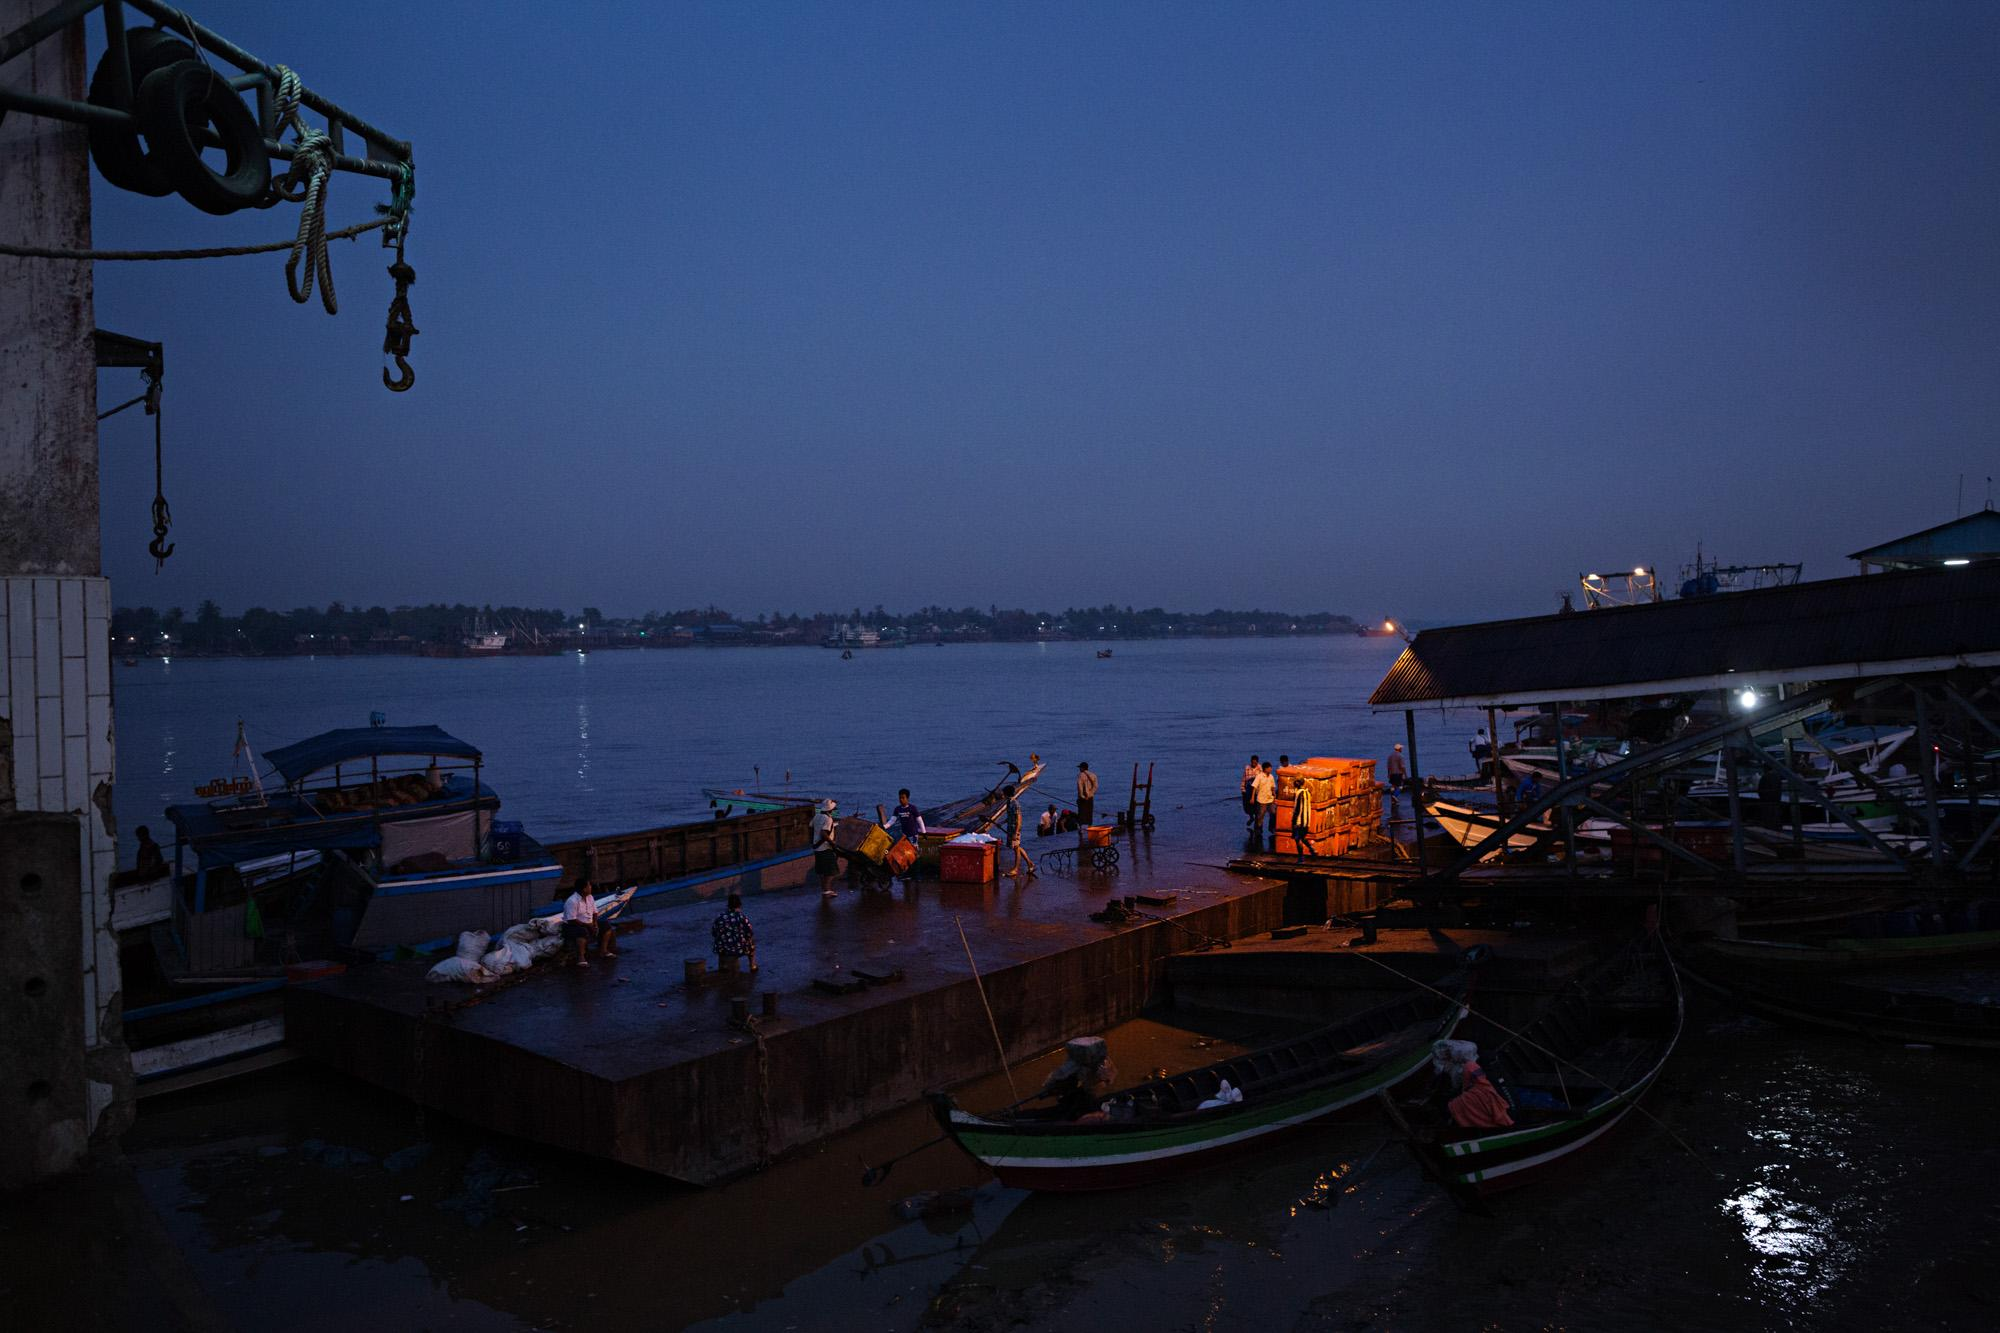 The first hints of dawn are seen over San Pya fish market in Yangon, Myanmar. This market is the main buying and selling point for shops, restaurants and individuals looking to purchase seafood and fresh water fish.